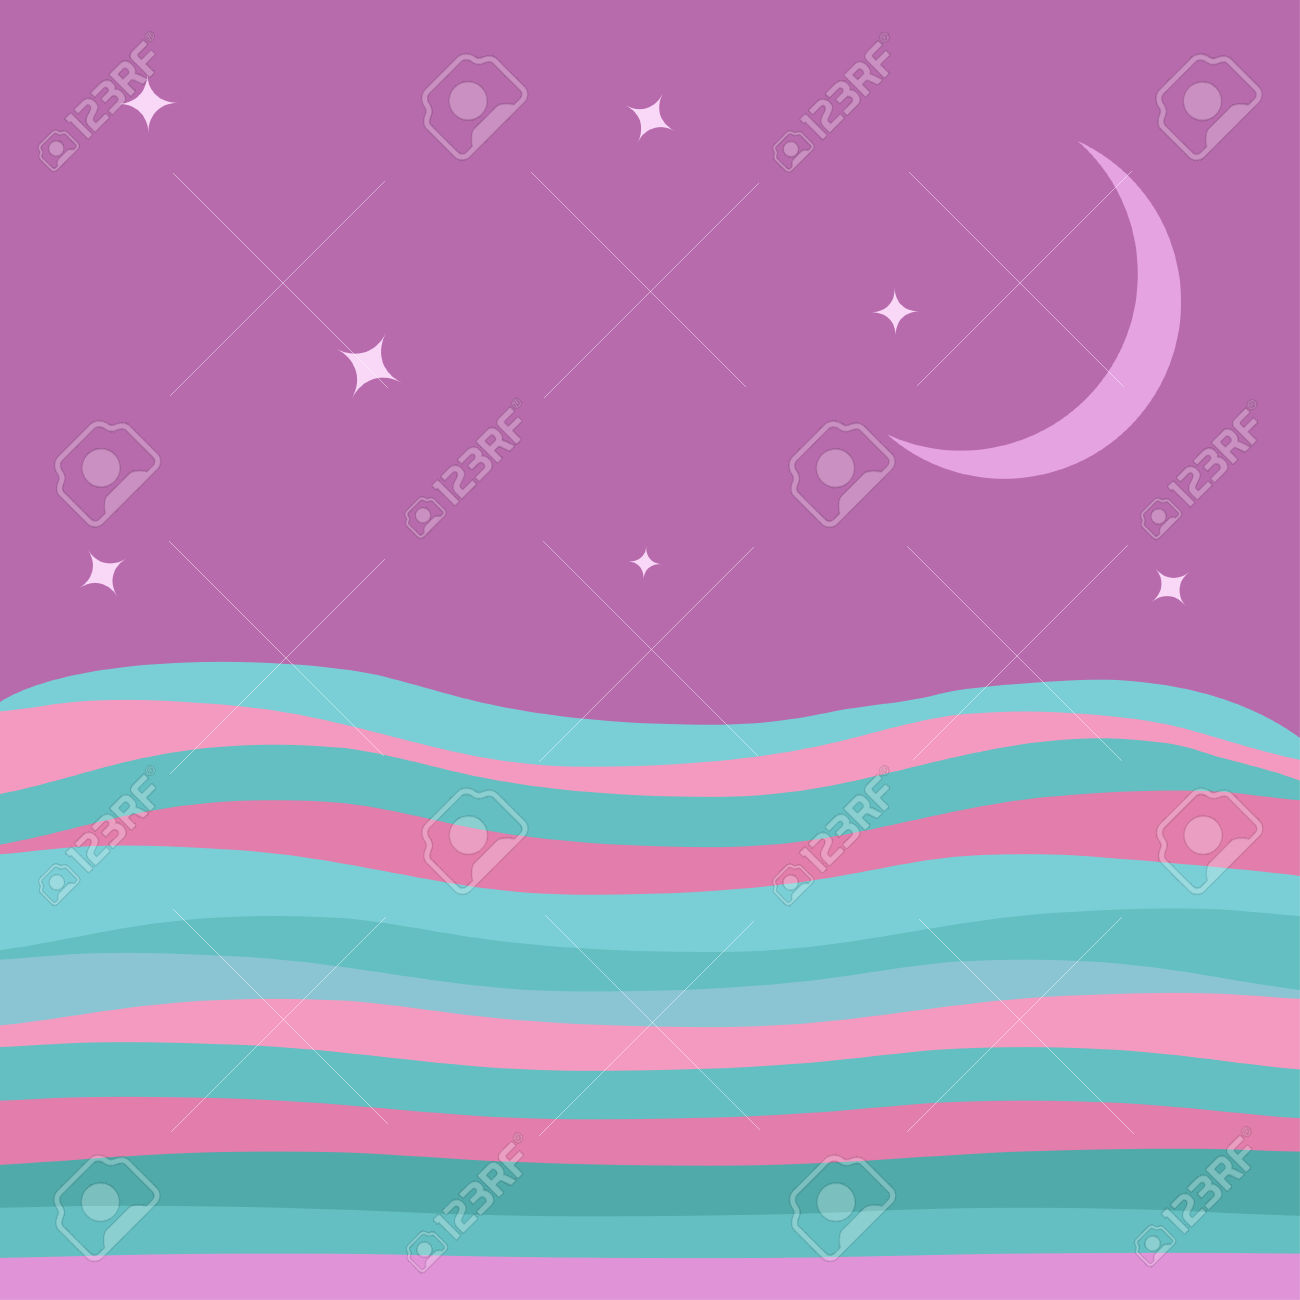 Sea Ocean Water With Blue Pink Waves Violet Sky And Halfmoon.